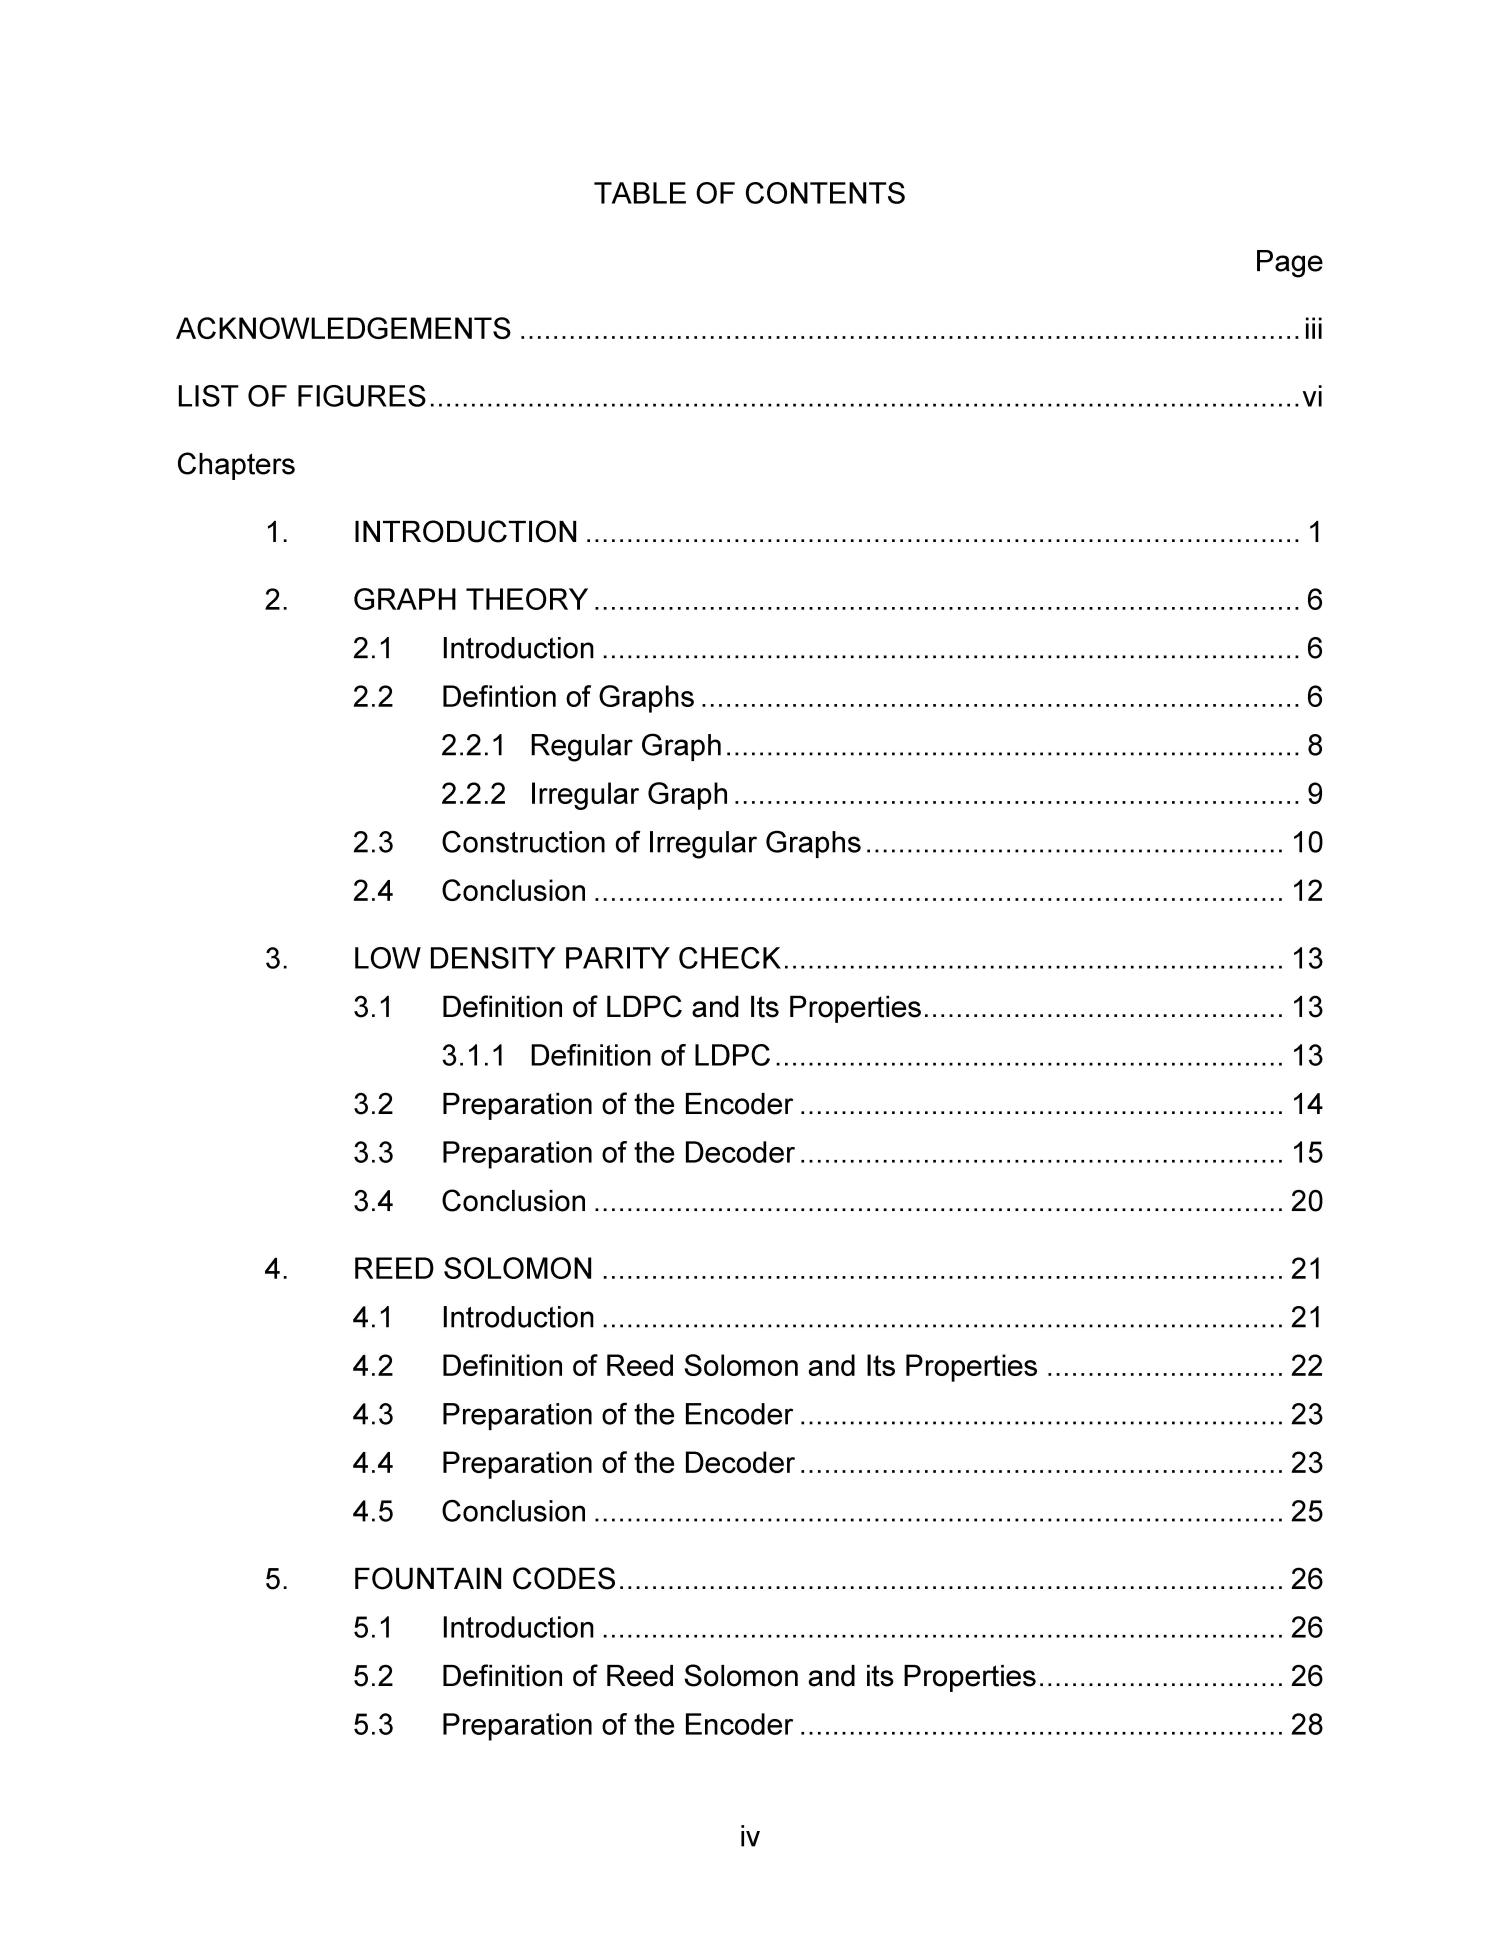 digital dissertations full text The digital thesis deposit has been a publishing the digitized full text of medical student theses on the as a graduating class of 2012, students who completed a master's thesis have submitted it to the proquest dissertations and thesis database additionally in 2014.